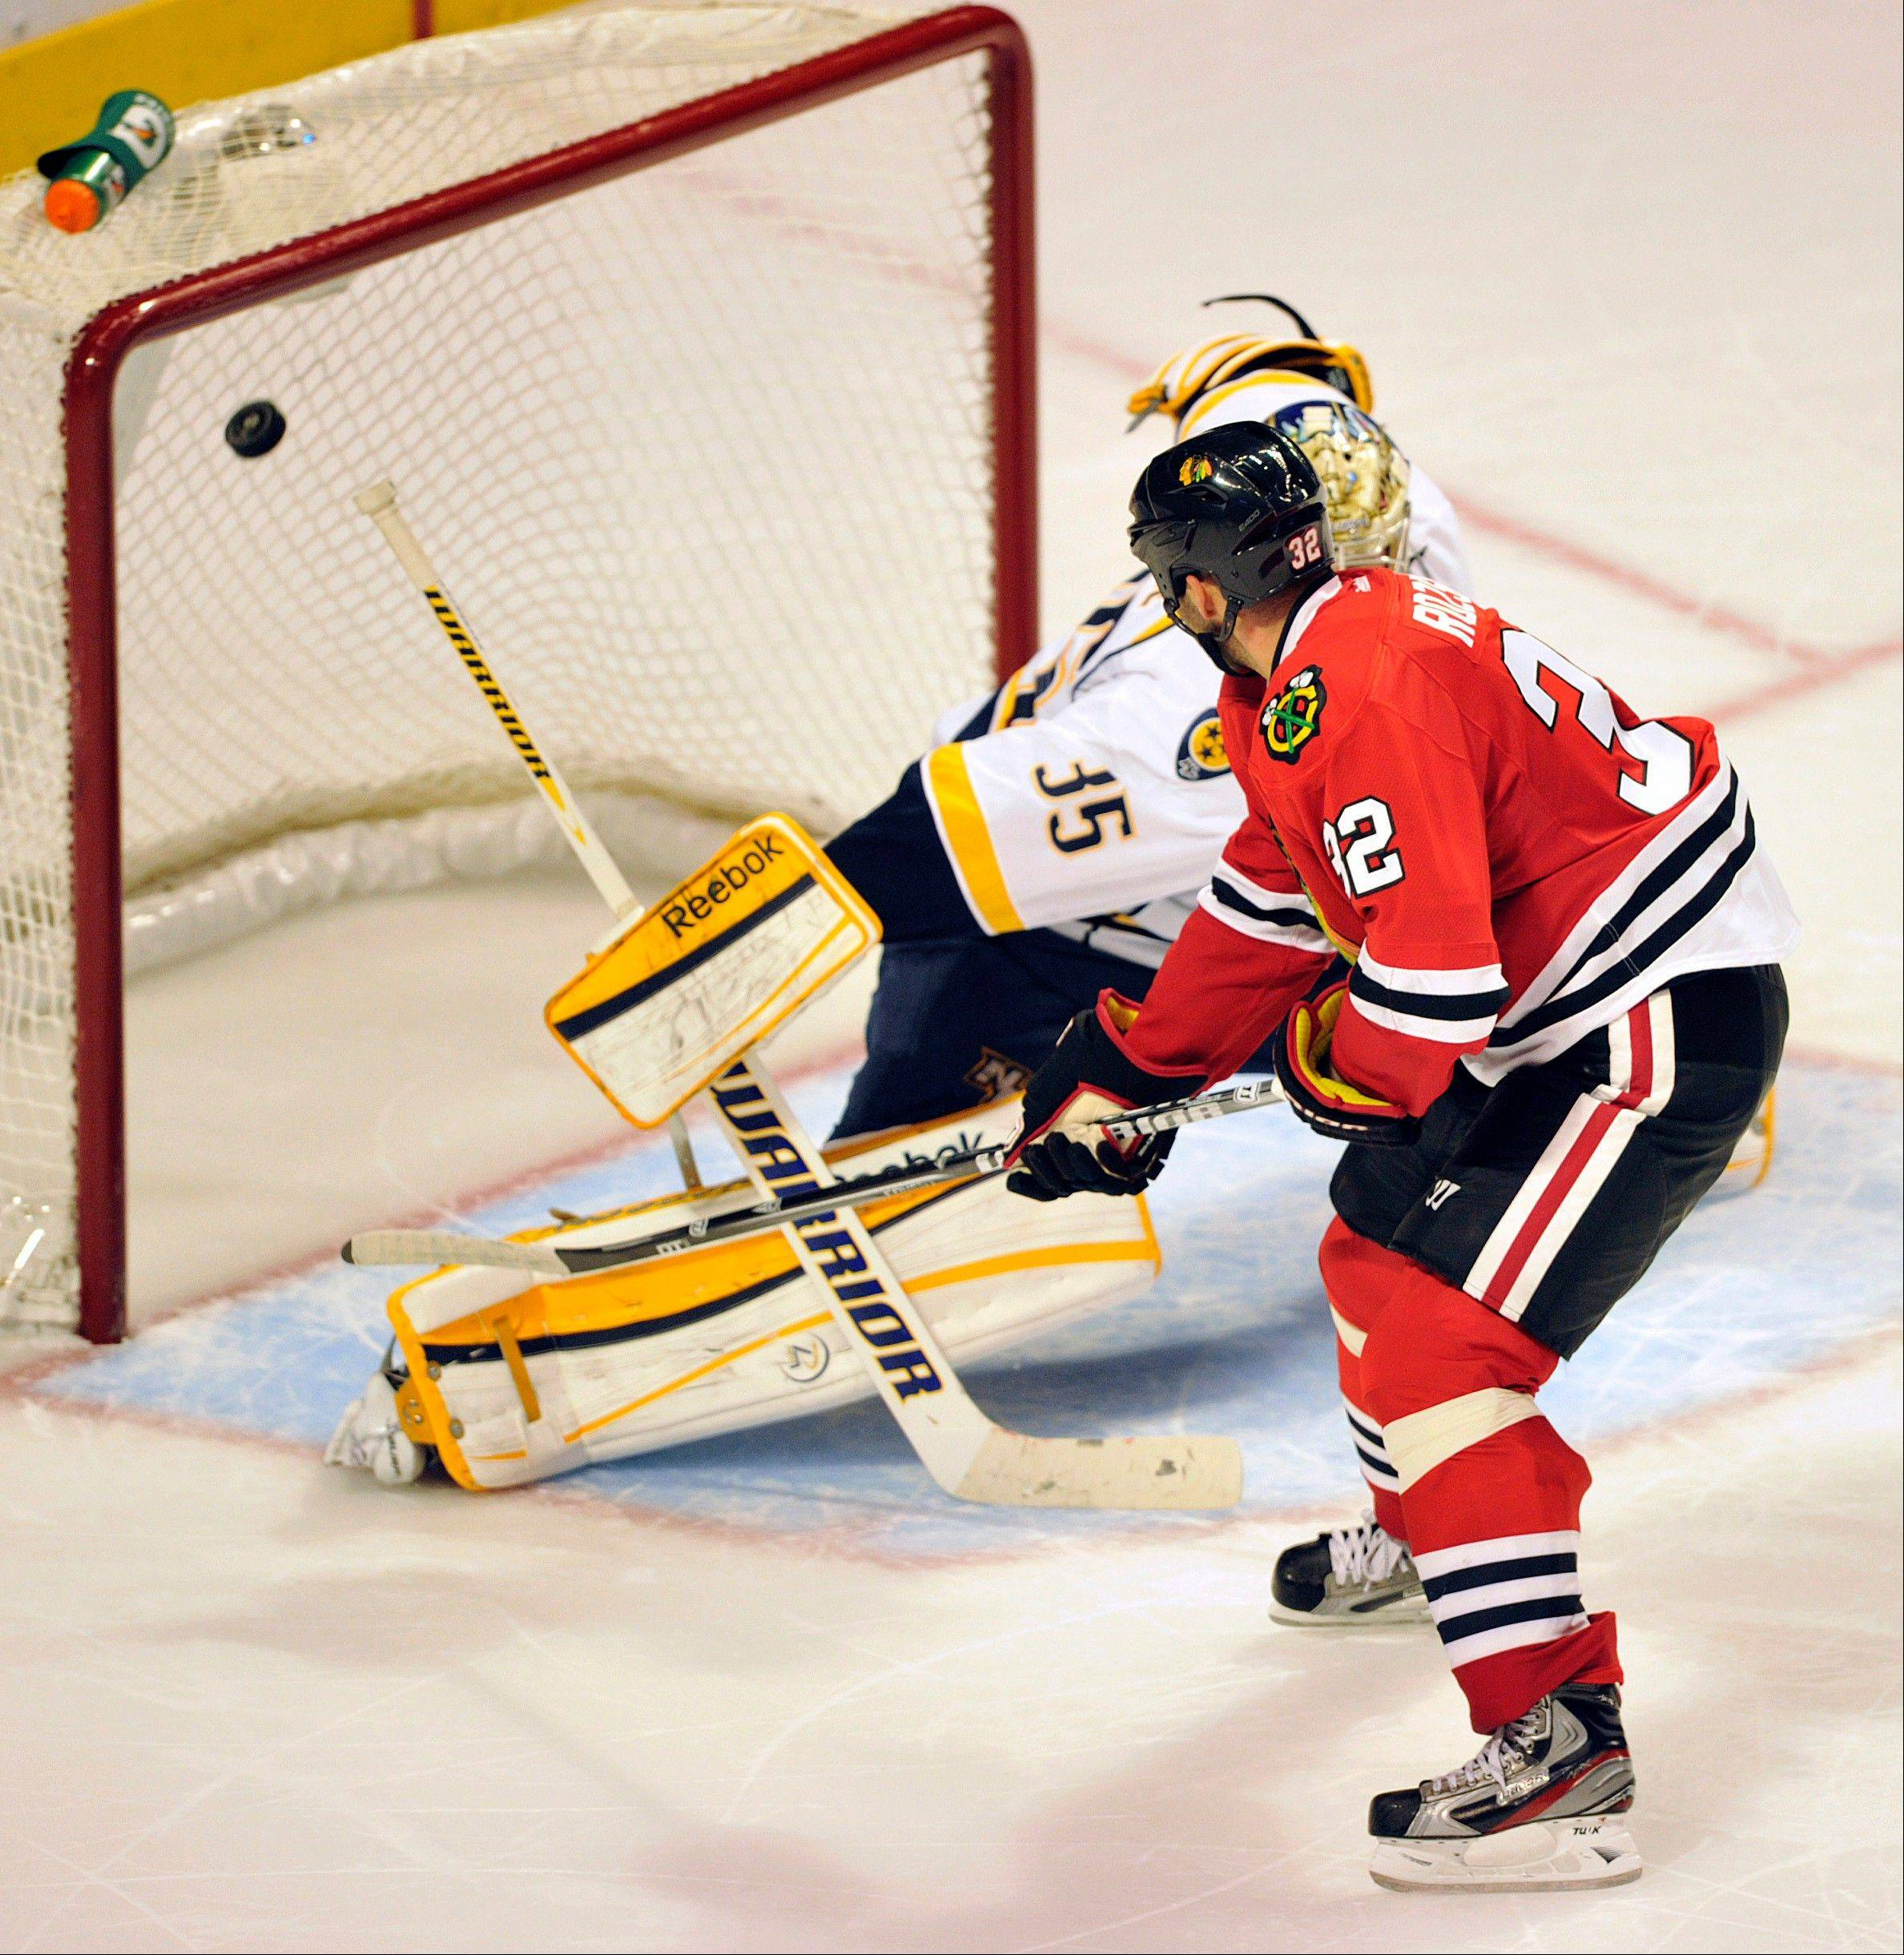 Blackhawks' Michal Rozsival scores the winning goal against Predators goalie Pekka Rinne during the shootout Monday night at the United Center. The Blackhawks defeated the Predators 3-2.